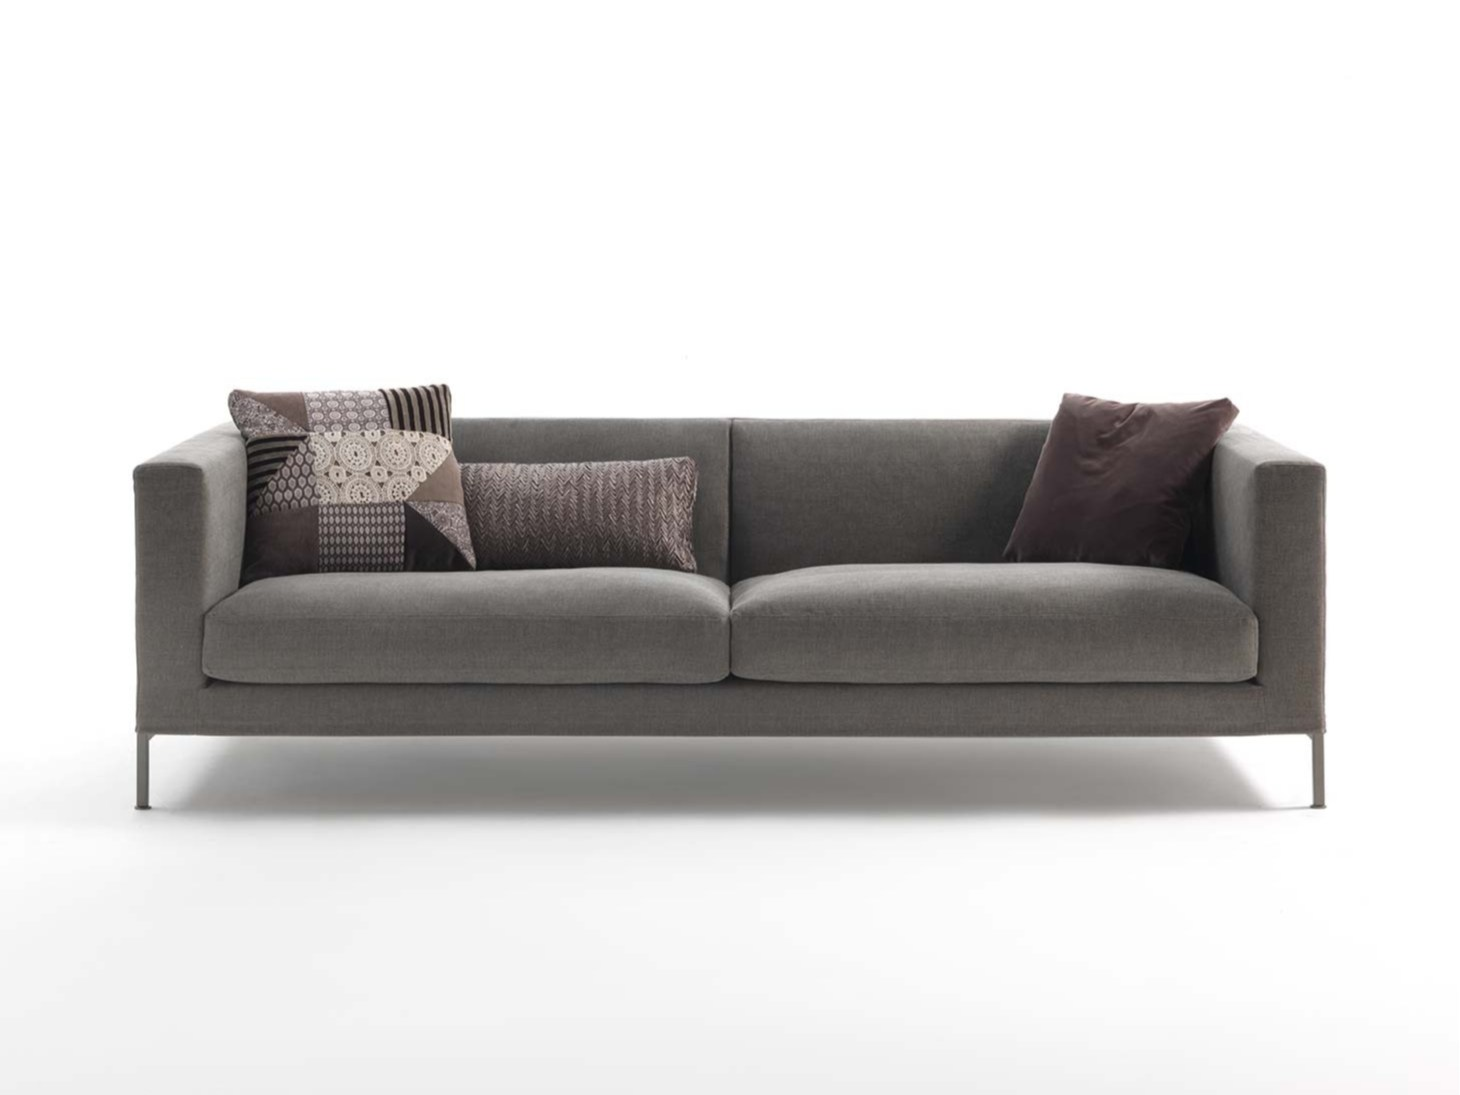 Otto canap 4 places by frigerio poltrone e divani for Canape poltrone et sofa